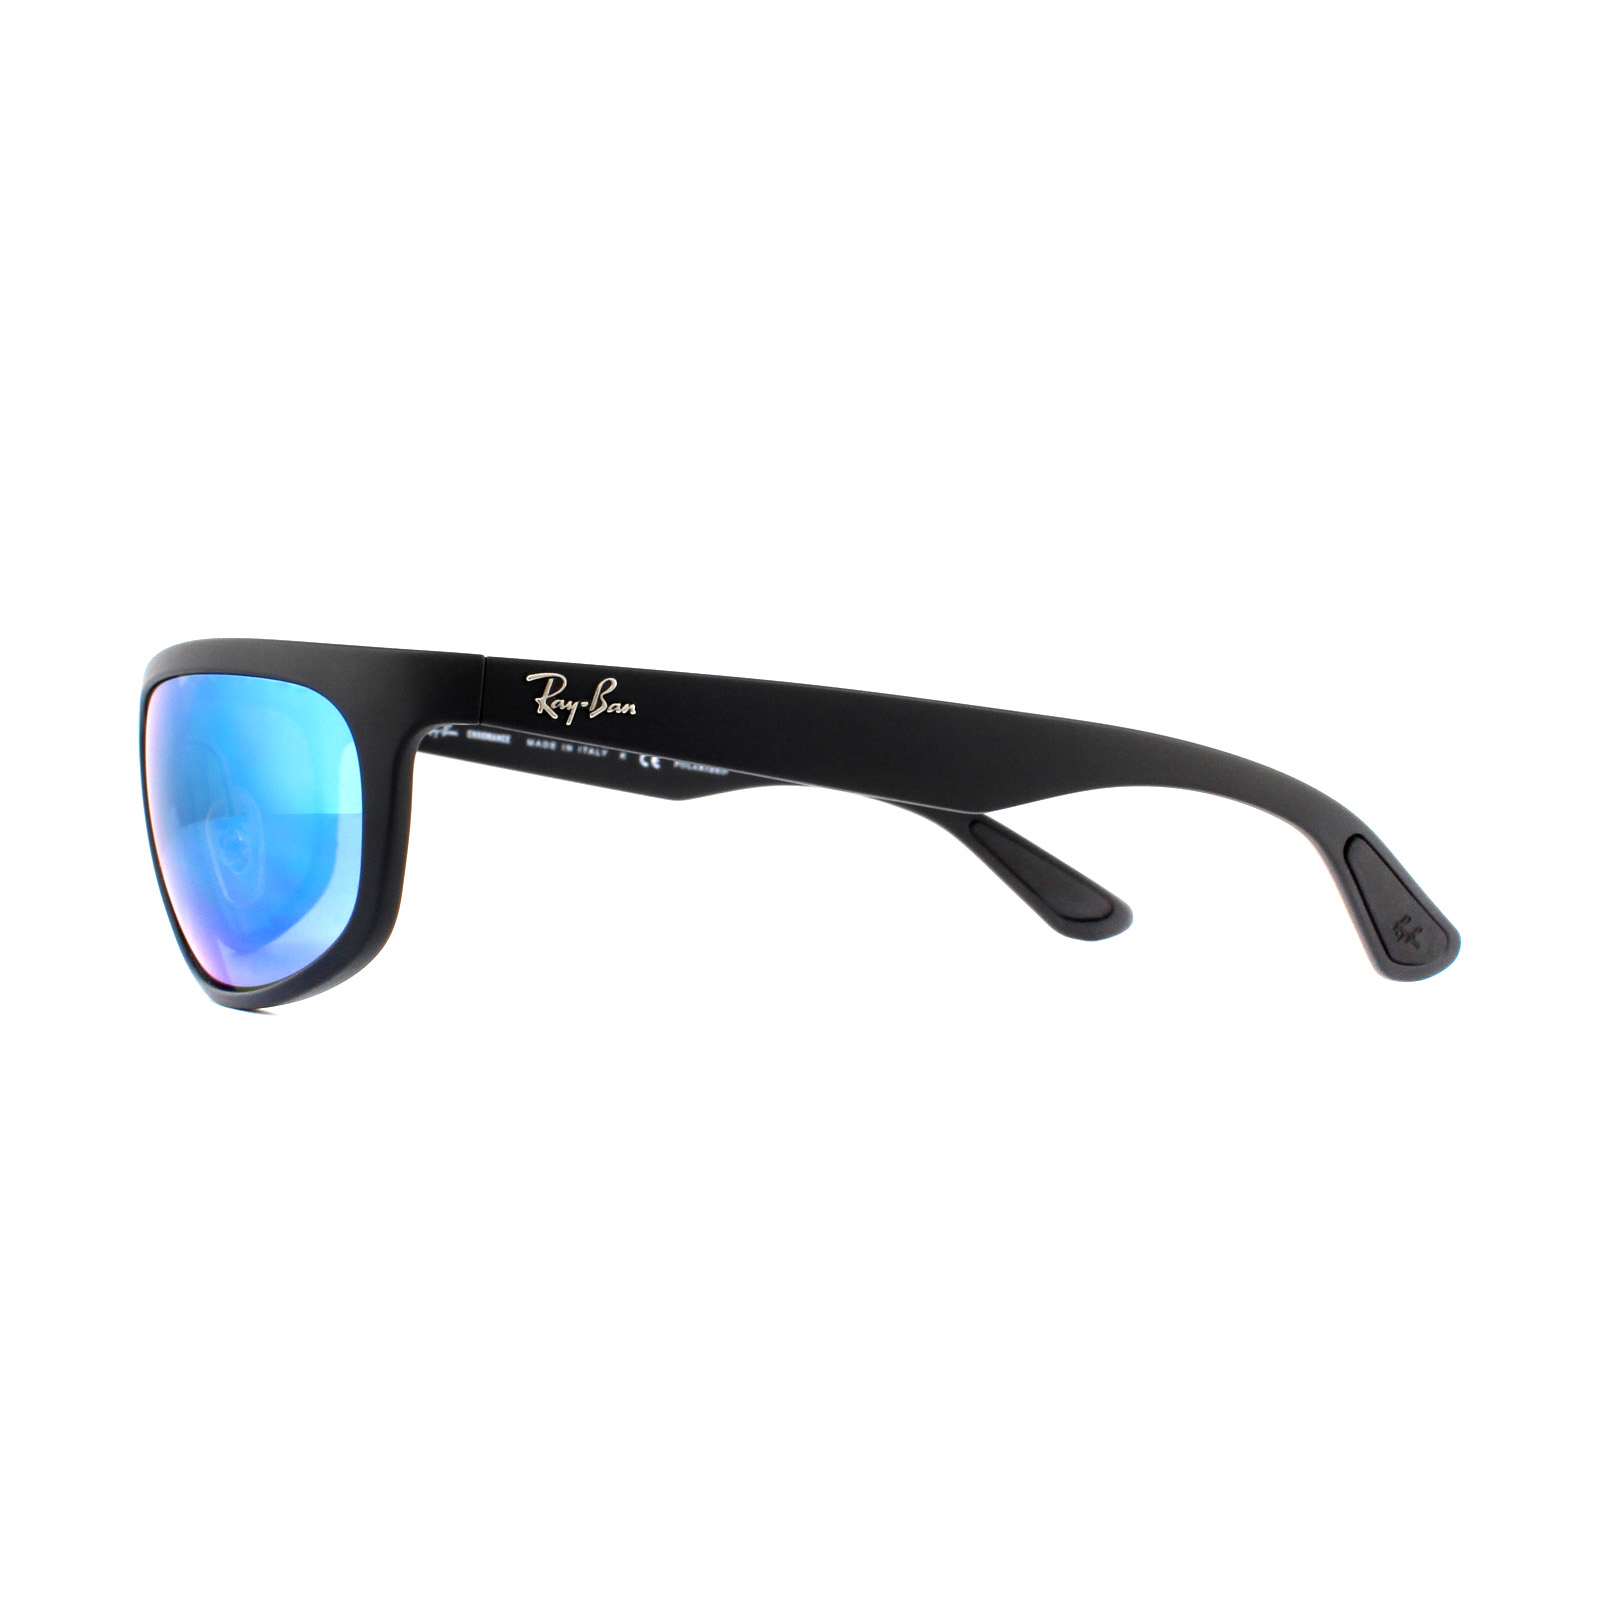 5472a692a3c Sentinel Ray-Ban Sunglasses RB4265 601SA1 Black Blue Mirror Chromance  Polarized